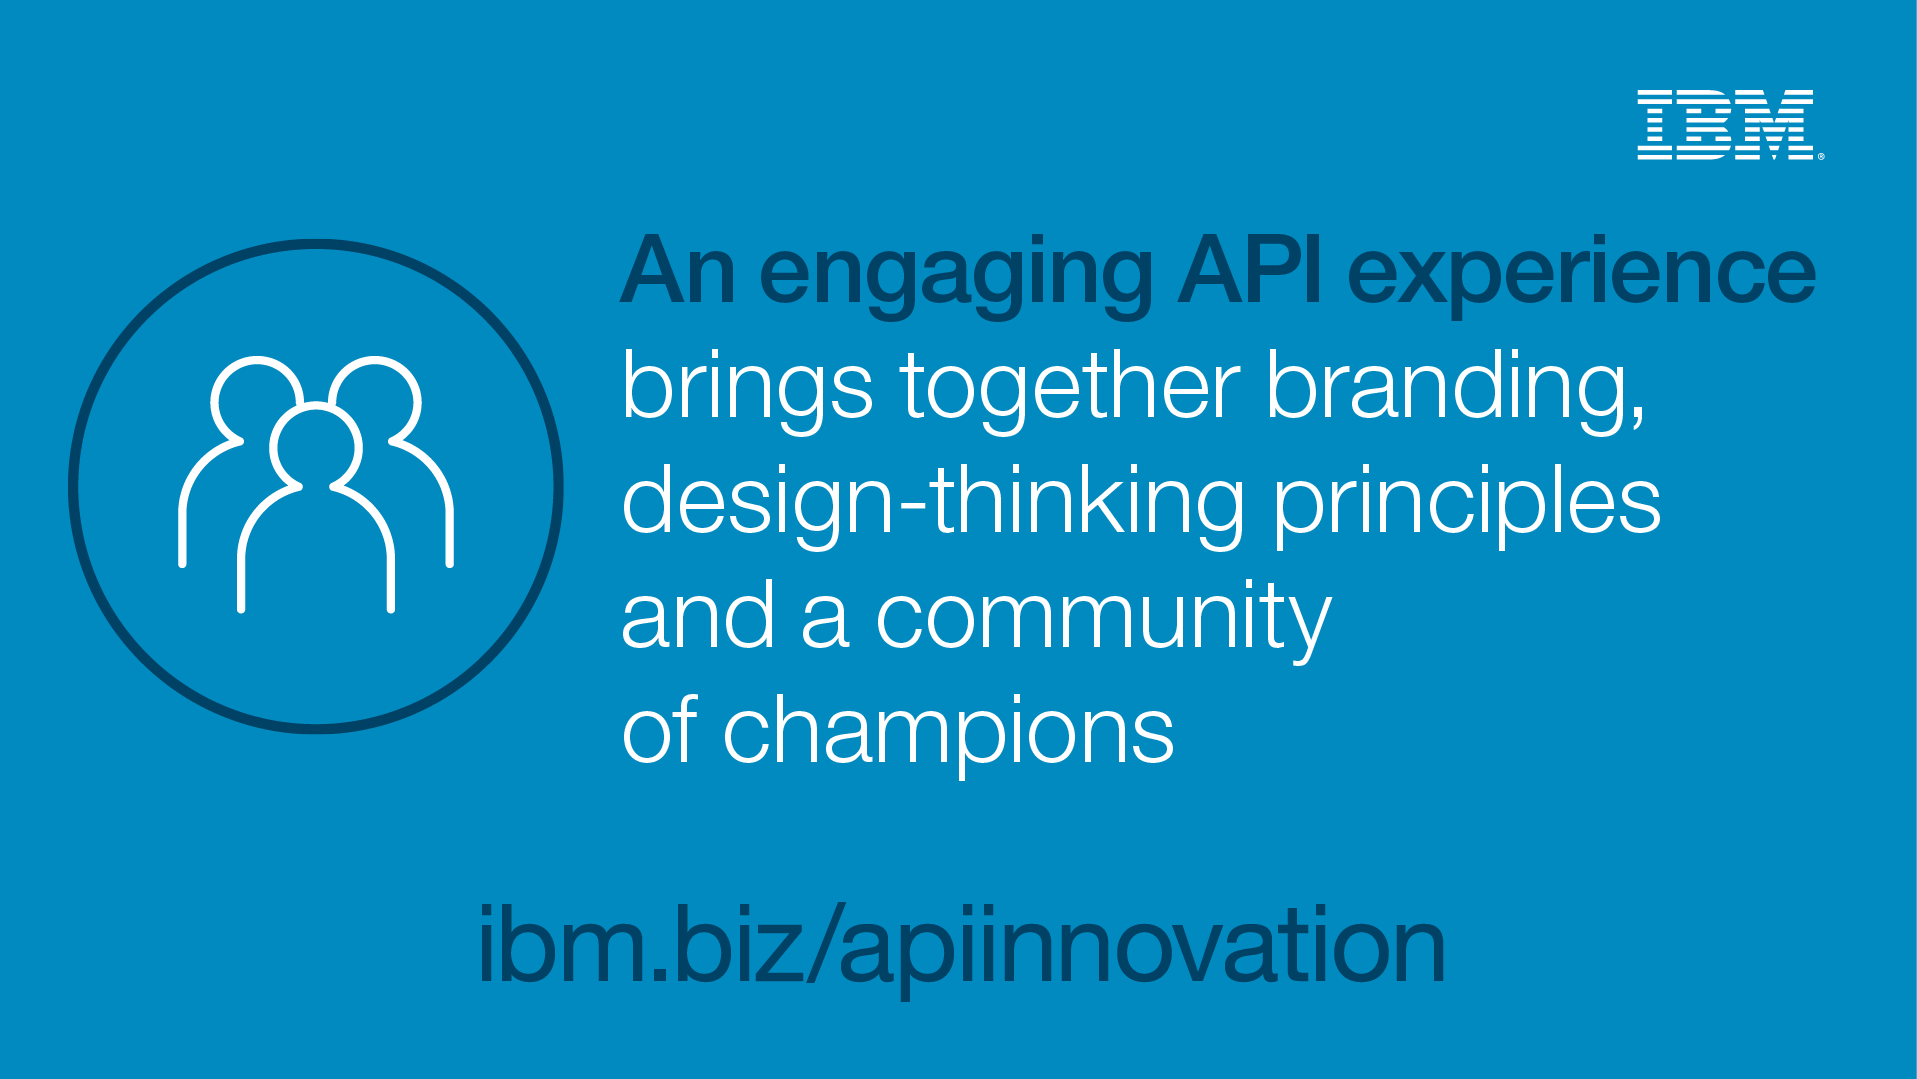 An engaging API Experience - Brings together branding, design-thinking principles  and a community of champions - ibm.biz/apiinnovation